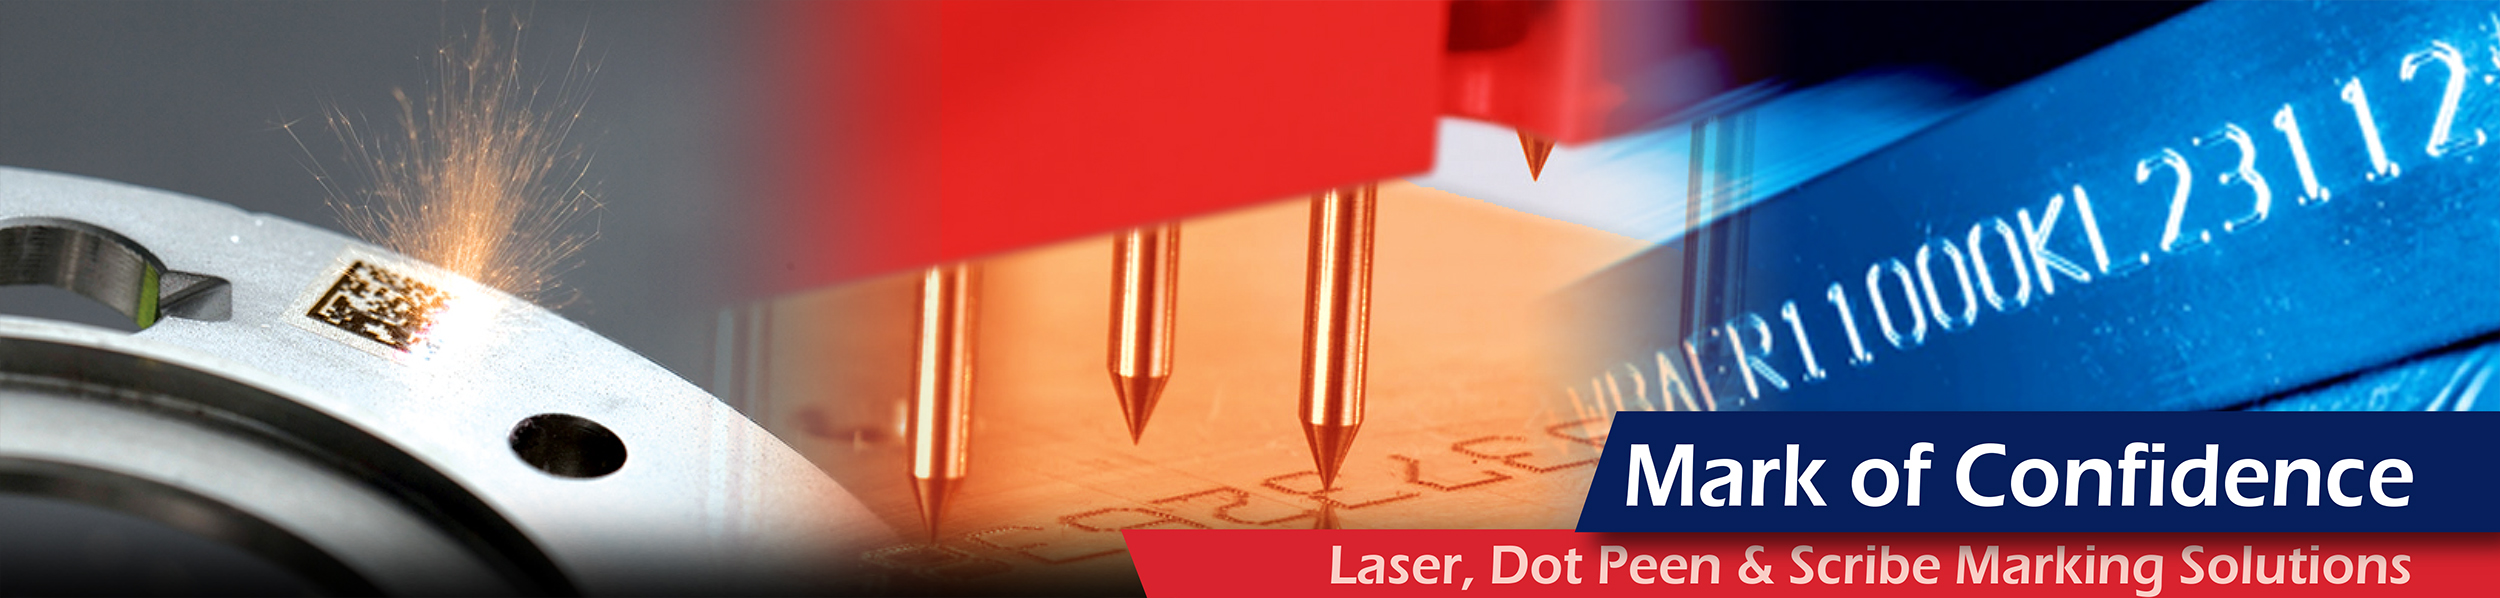 Telesis, Laser Marking, Dot Peen Marking, & Scribe Marking Systems since 1971